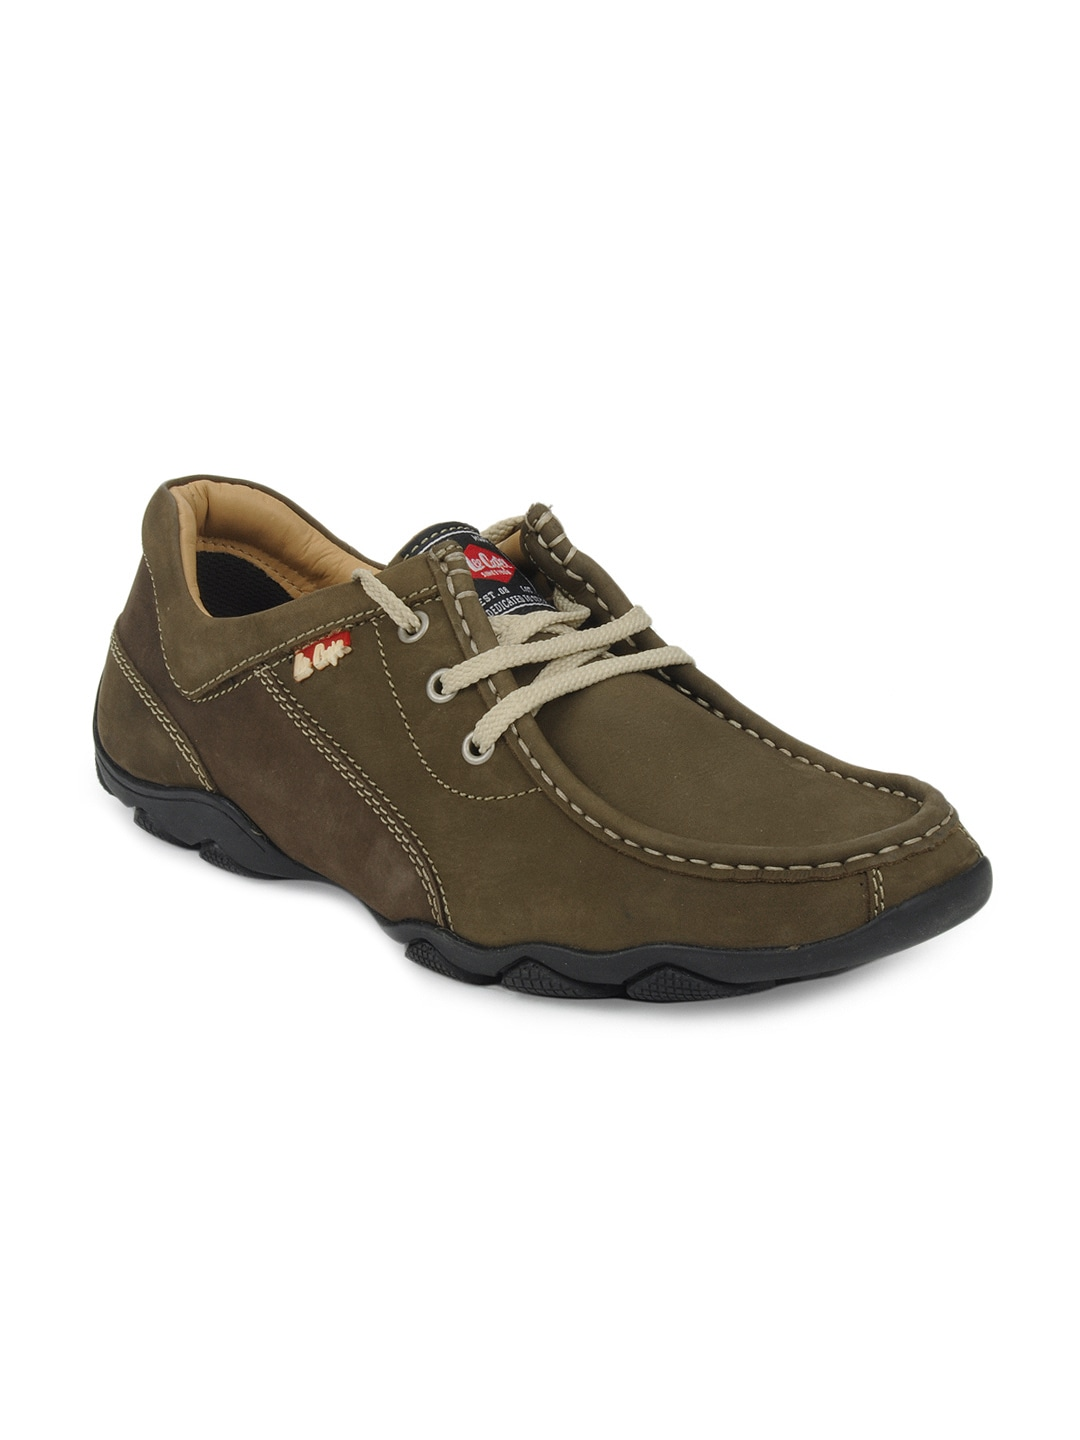 Is Lee Cooper Shoes A Good Brand